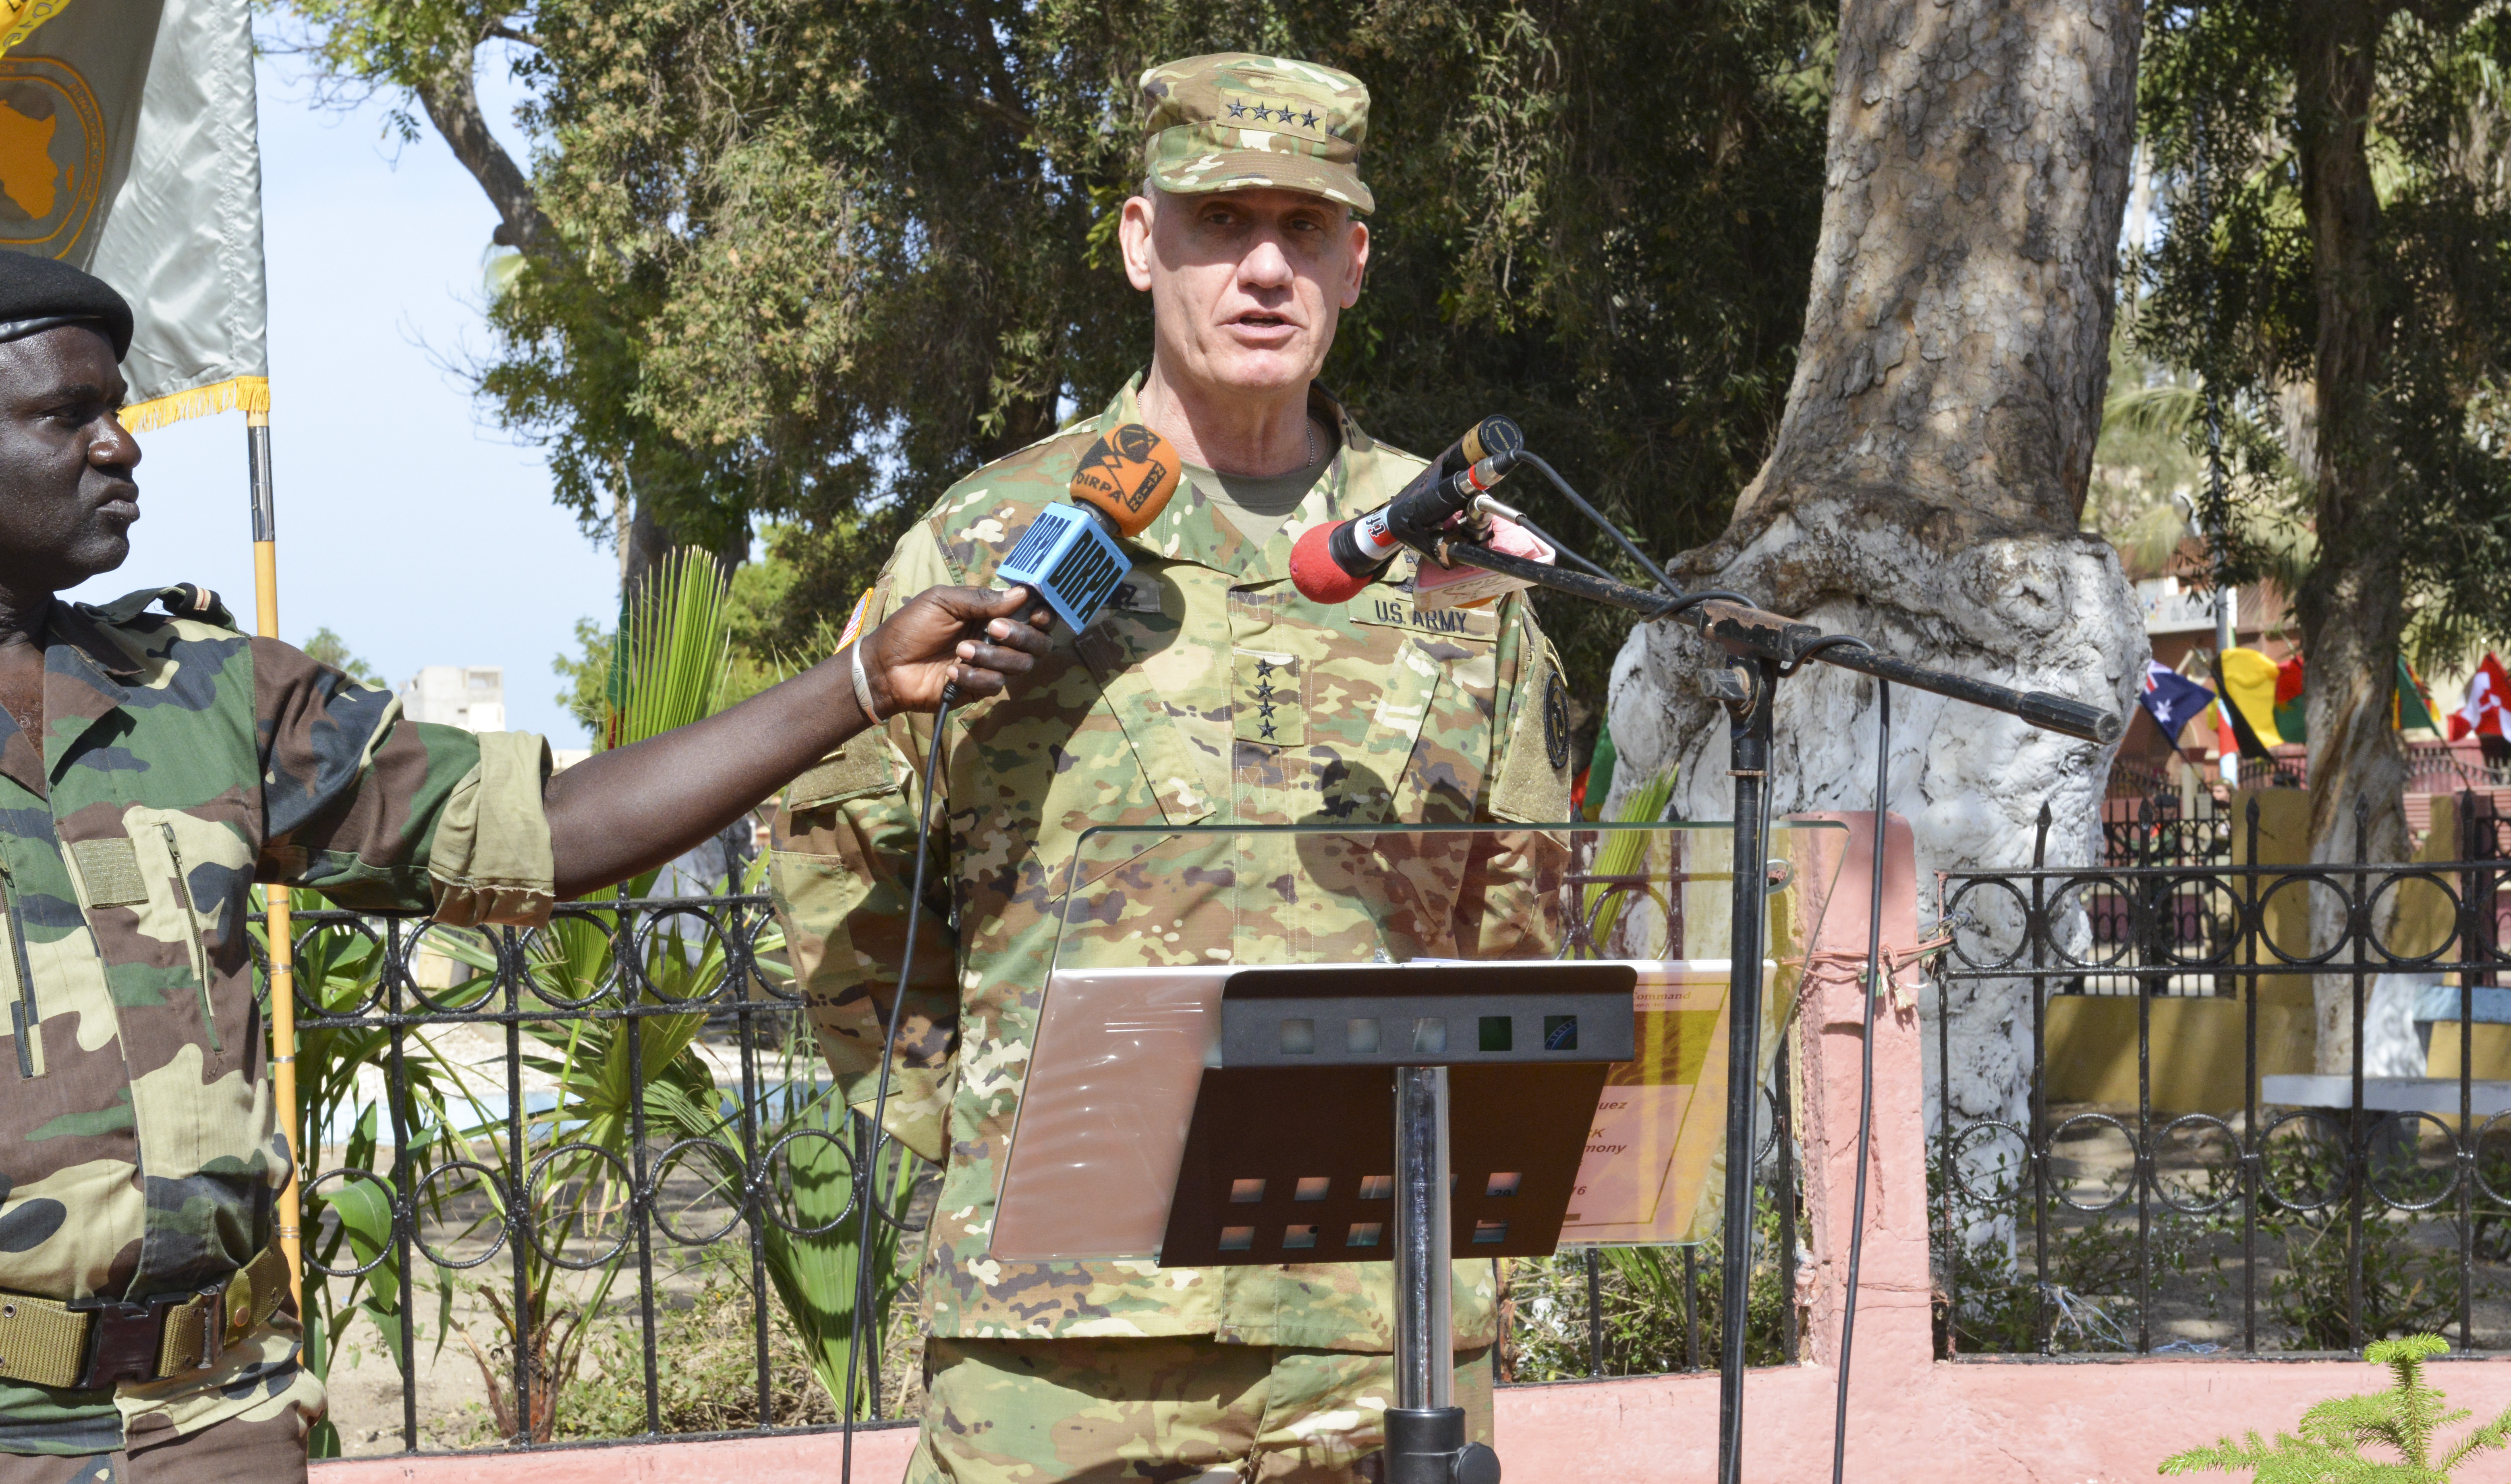 U.S. Army Gen. David Rodriguez, commander of U.S. Africa Command, speaks during the closing ceremony for Flintlock 2016 in St. Louis, Senegal, Feb. 29, 2016. Flintlock 2016, sponsored by AFRICOM, involved more than 2,200 participants from 28 African, European and North American partner nations. (Photo by U.S. Army Staff Sgt. Christopher Klutts, U.S. Africa Command)